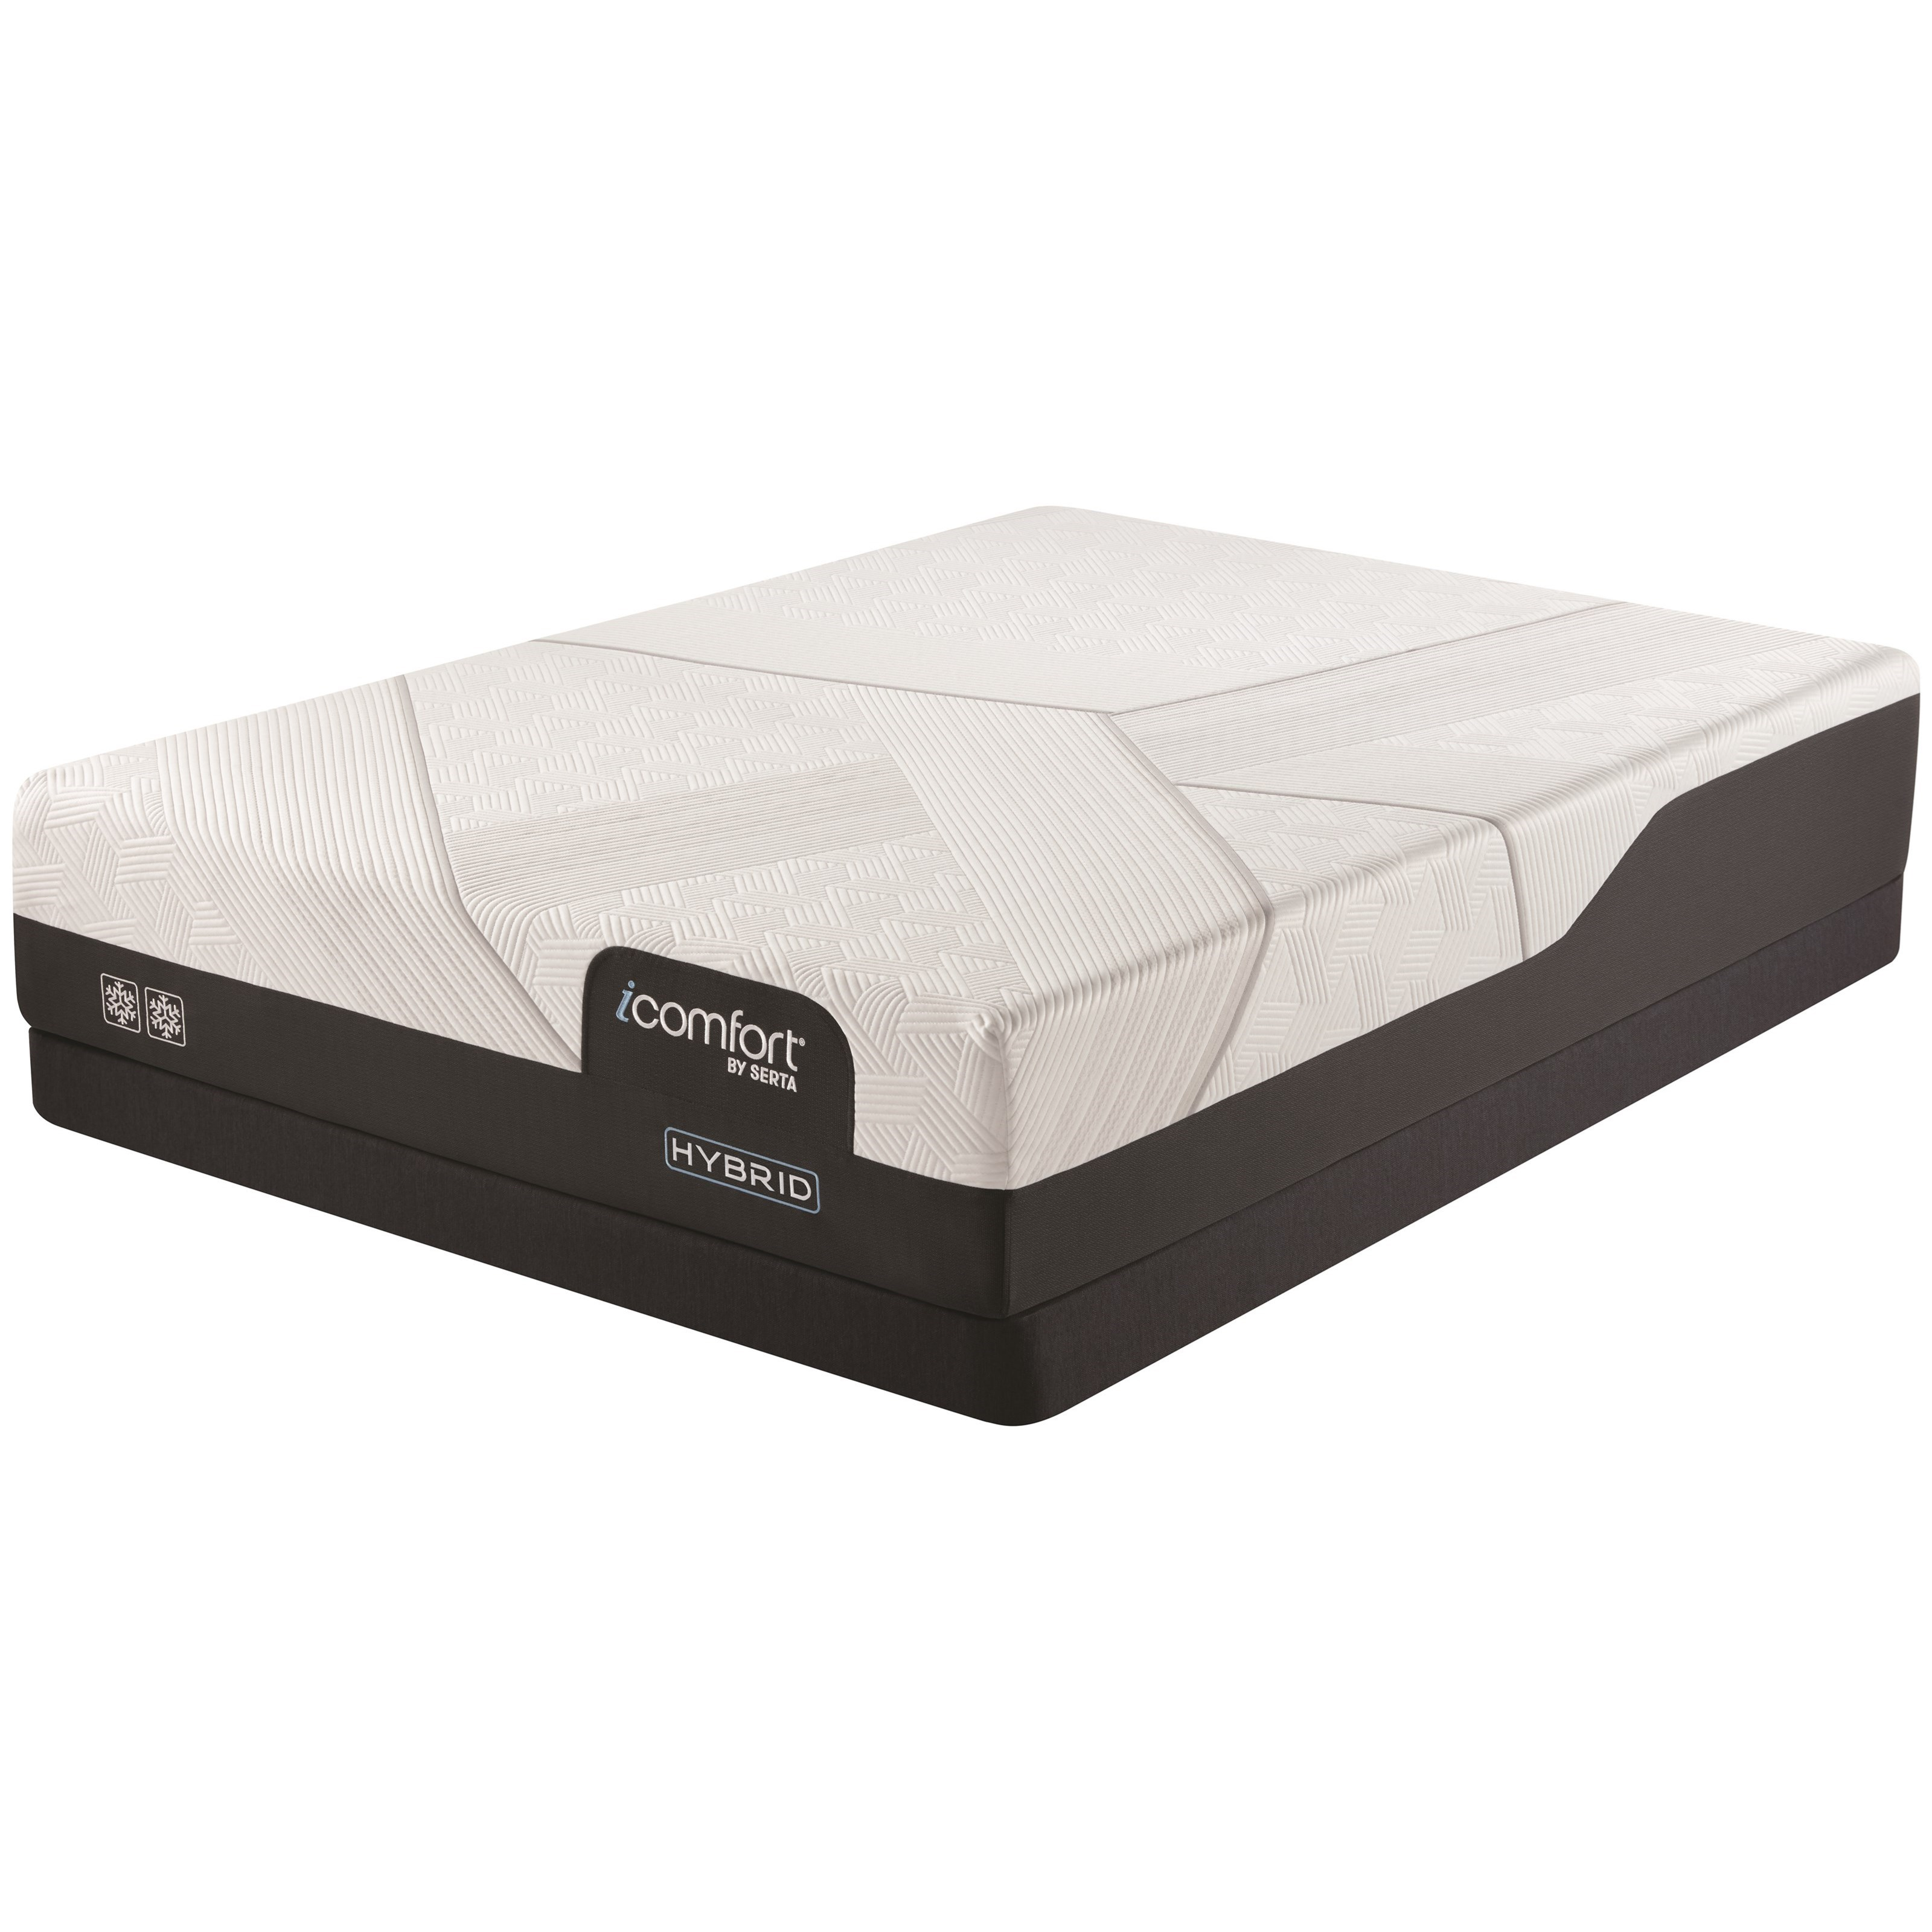 "CF2000 Hybrid Firm Twin XL 12 1/2"" Firm Hybrid LP Set by Serta at Walker's Mattress"